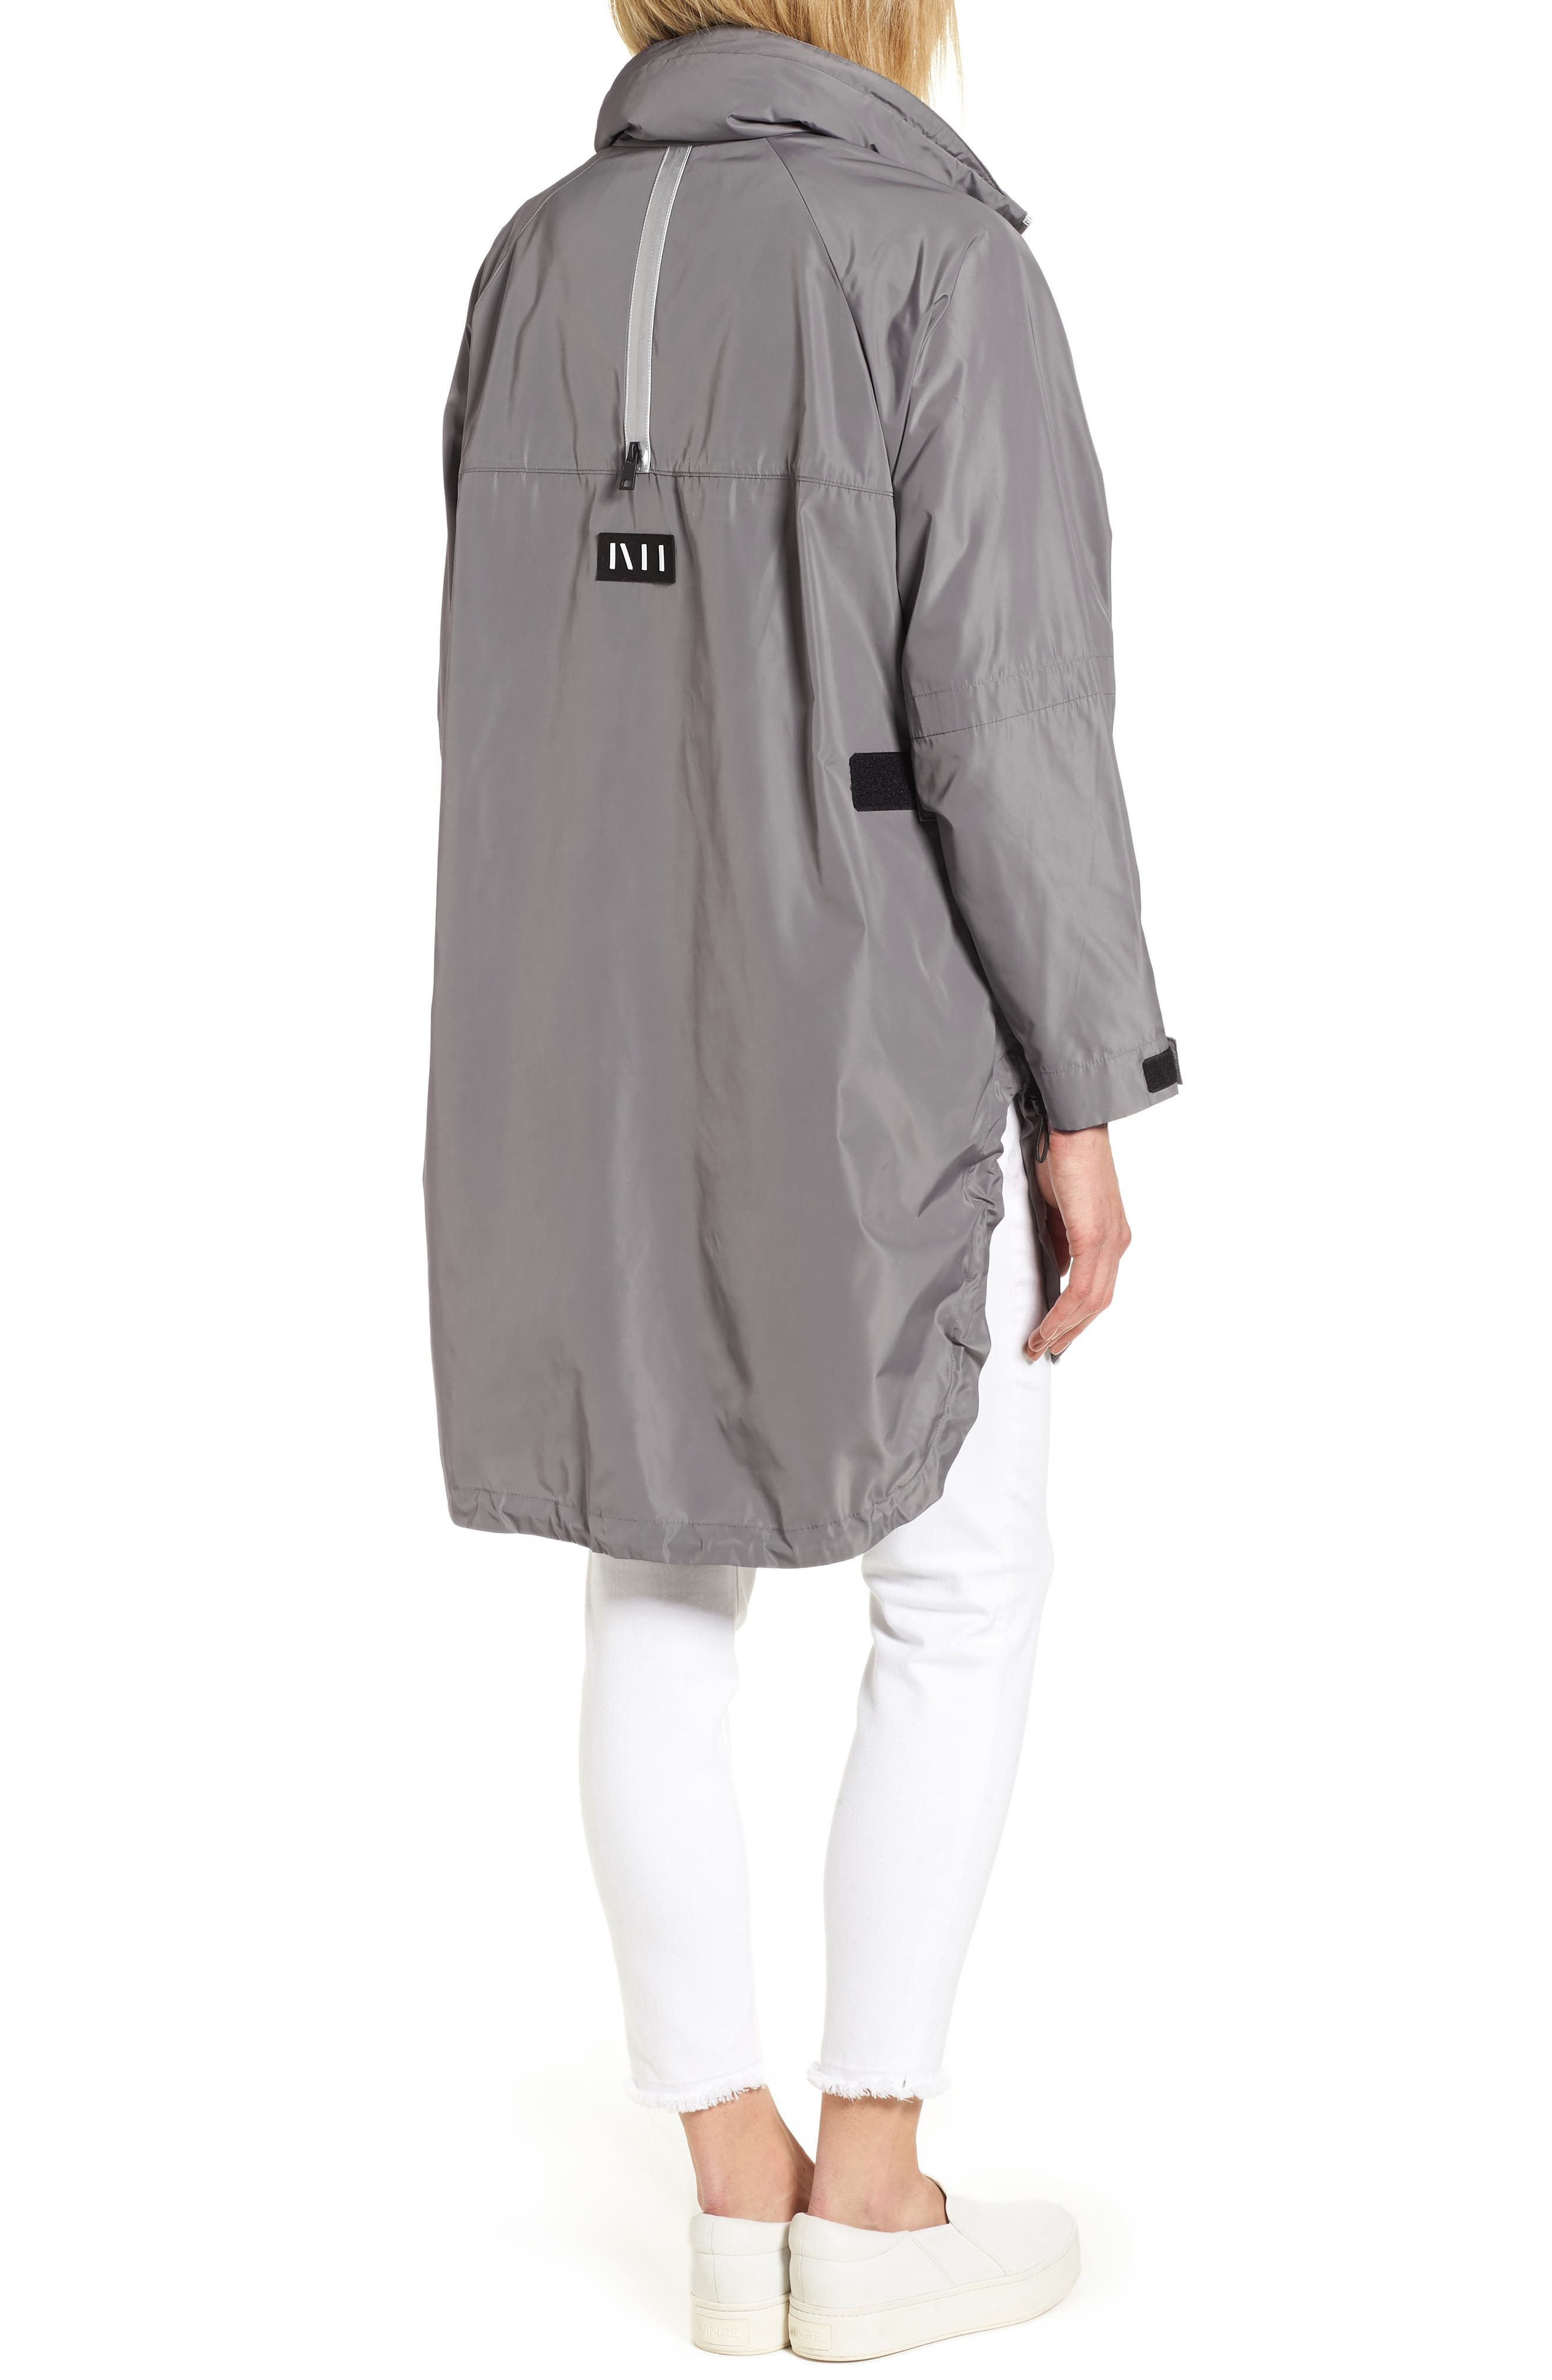 Poly-Luxe Packable Oversize Jacket,                             Alternate thumbnail 2, color,                             020